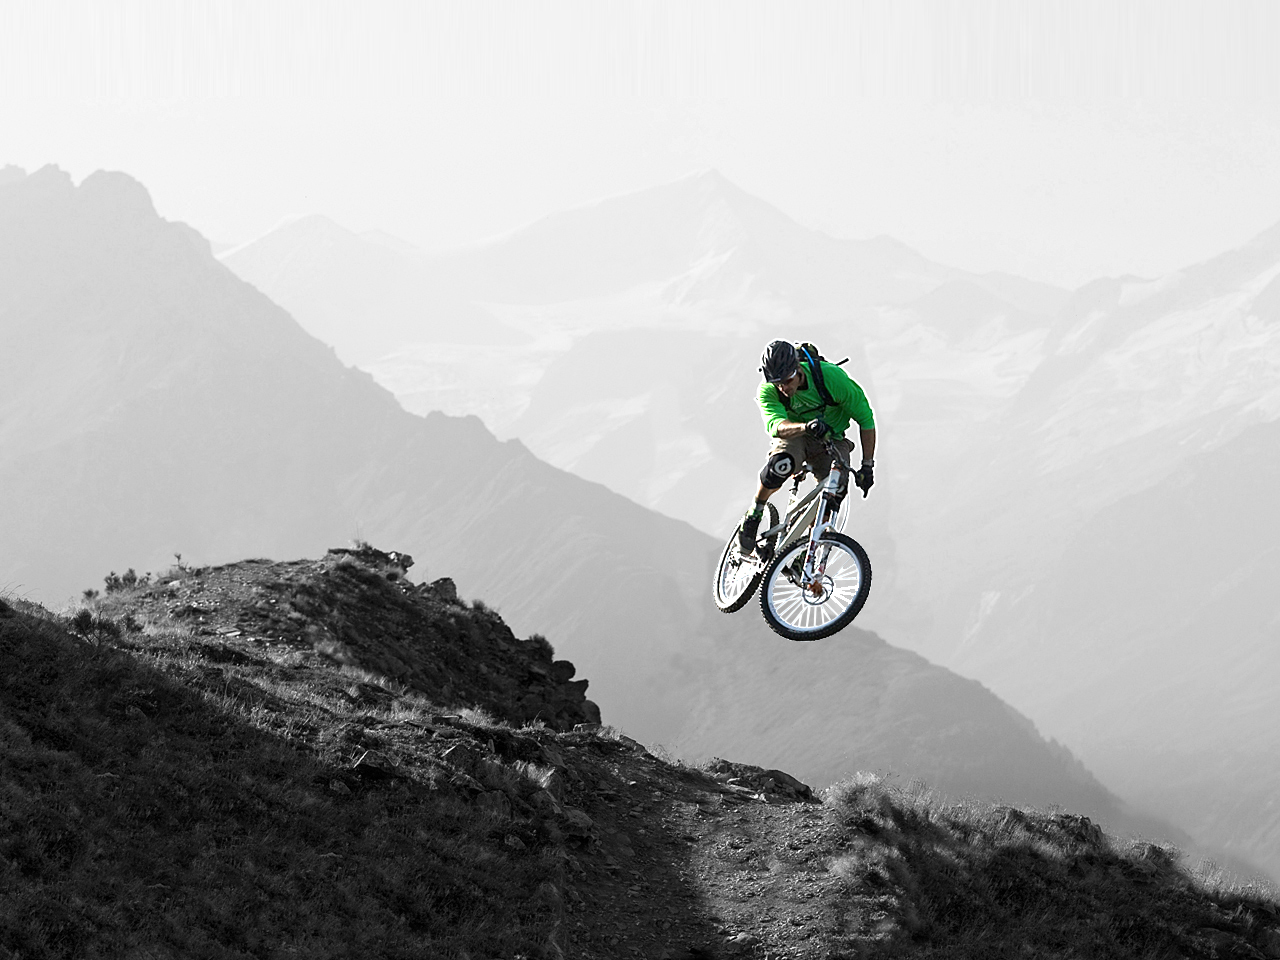 Mountain Road Bike Wallpapers: WallpaperSafari